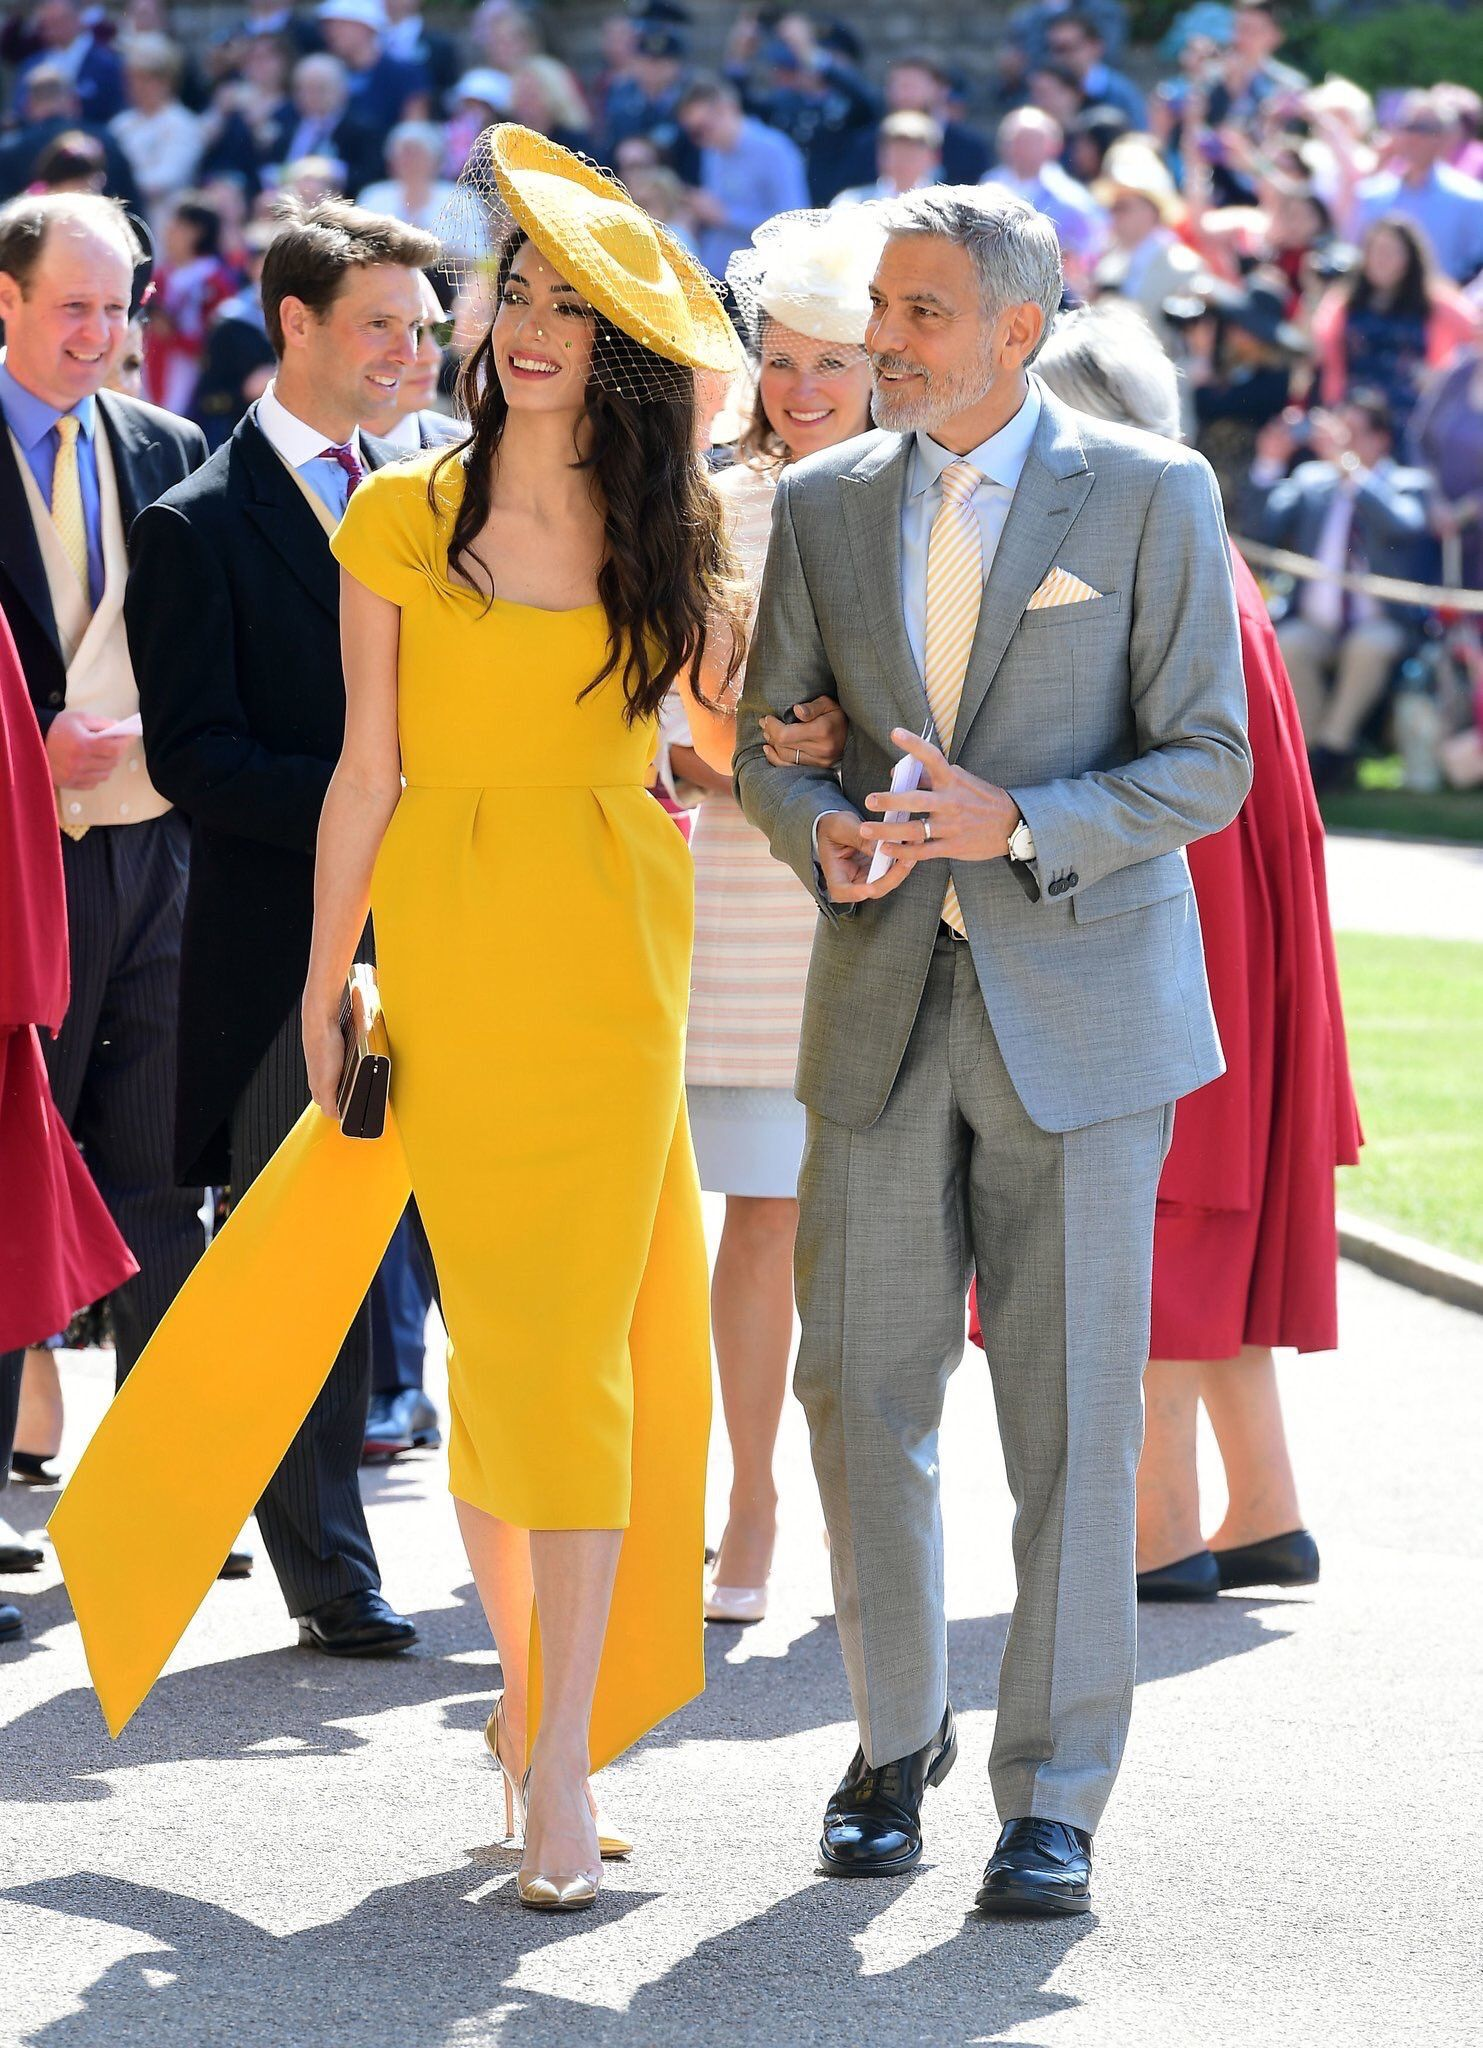 Amal Clooney royal wedding outfit | Wedeeng Dresses ...